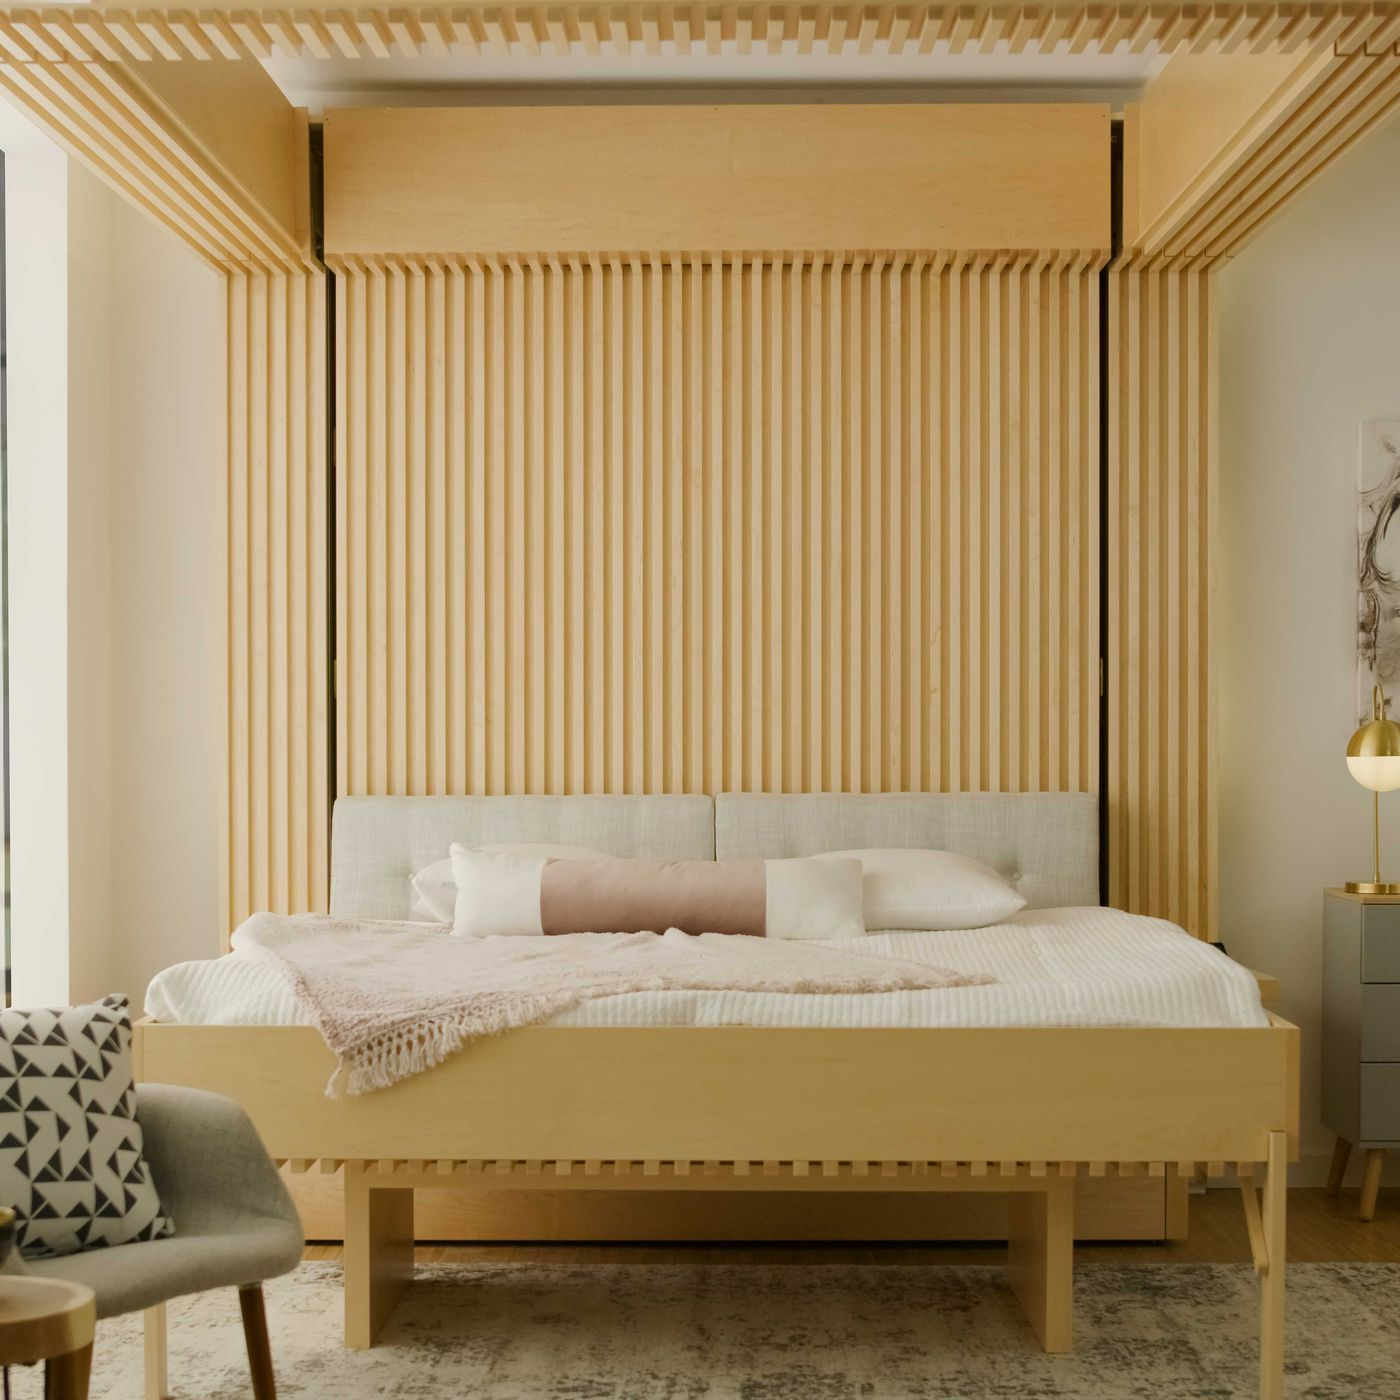 curbed.com - Liz Stinson - Ori's new robotic furniture includes a bed that drops from the ceiling